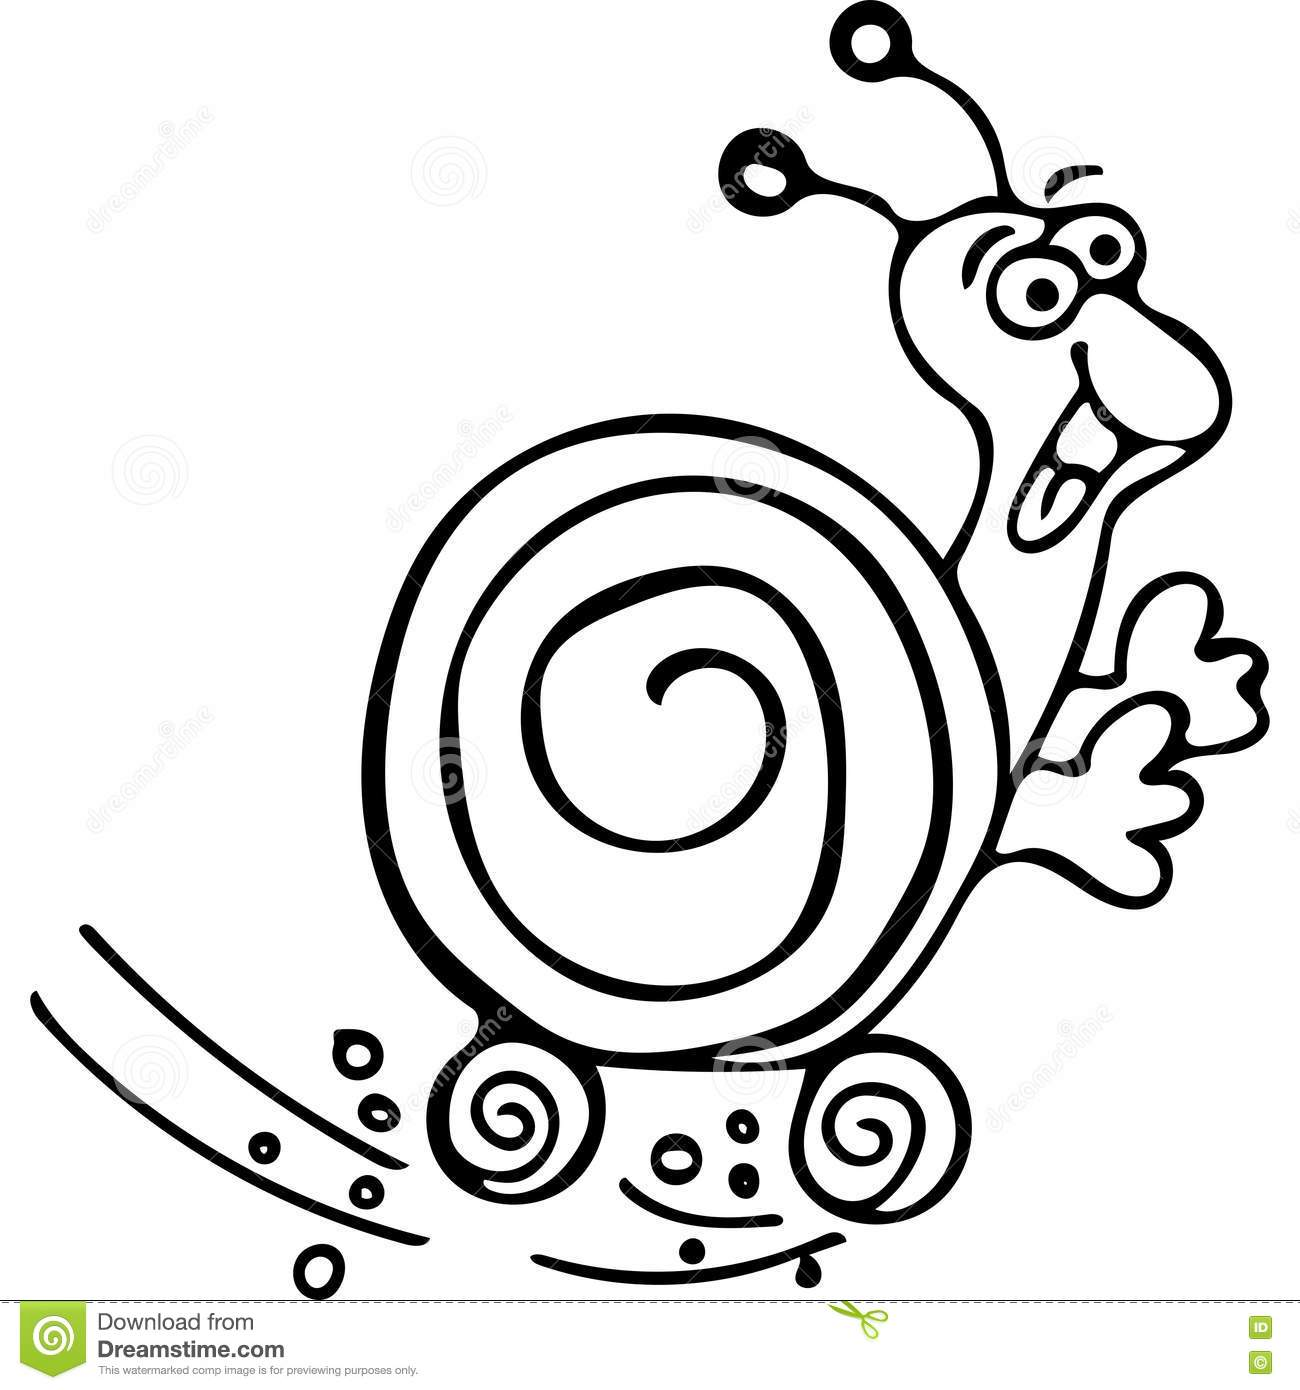 Snail kids coloring pages stock illustration. Illustration of smile ...